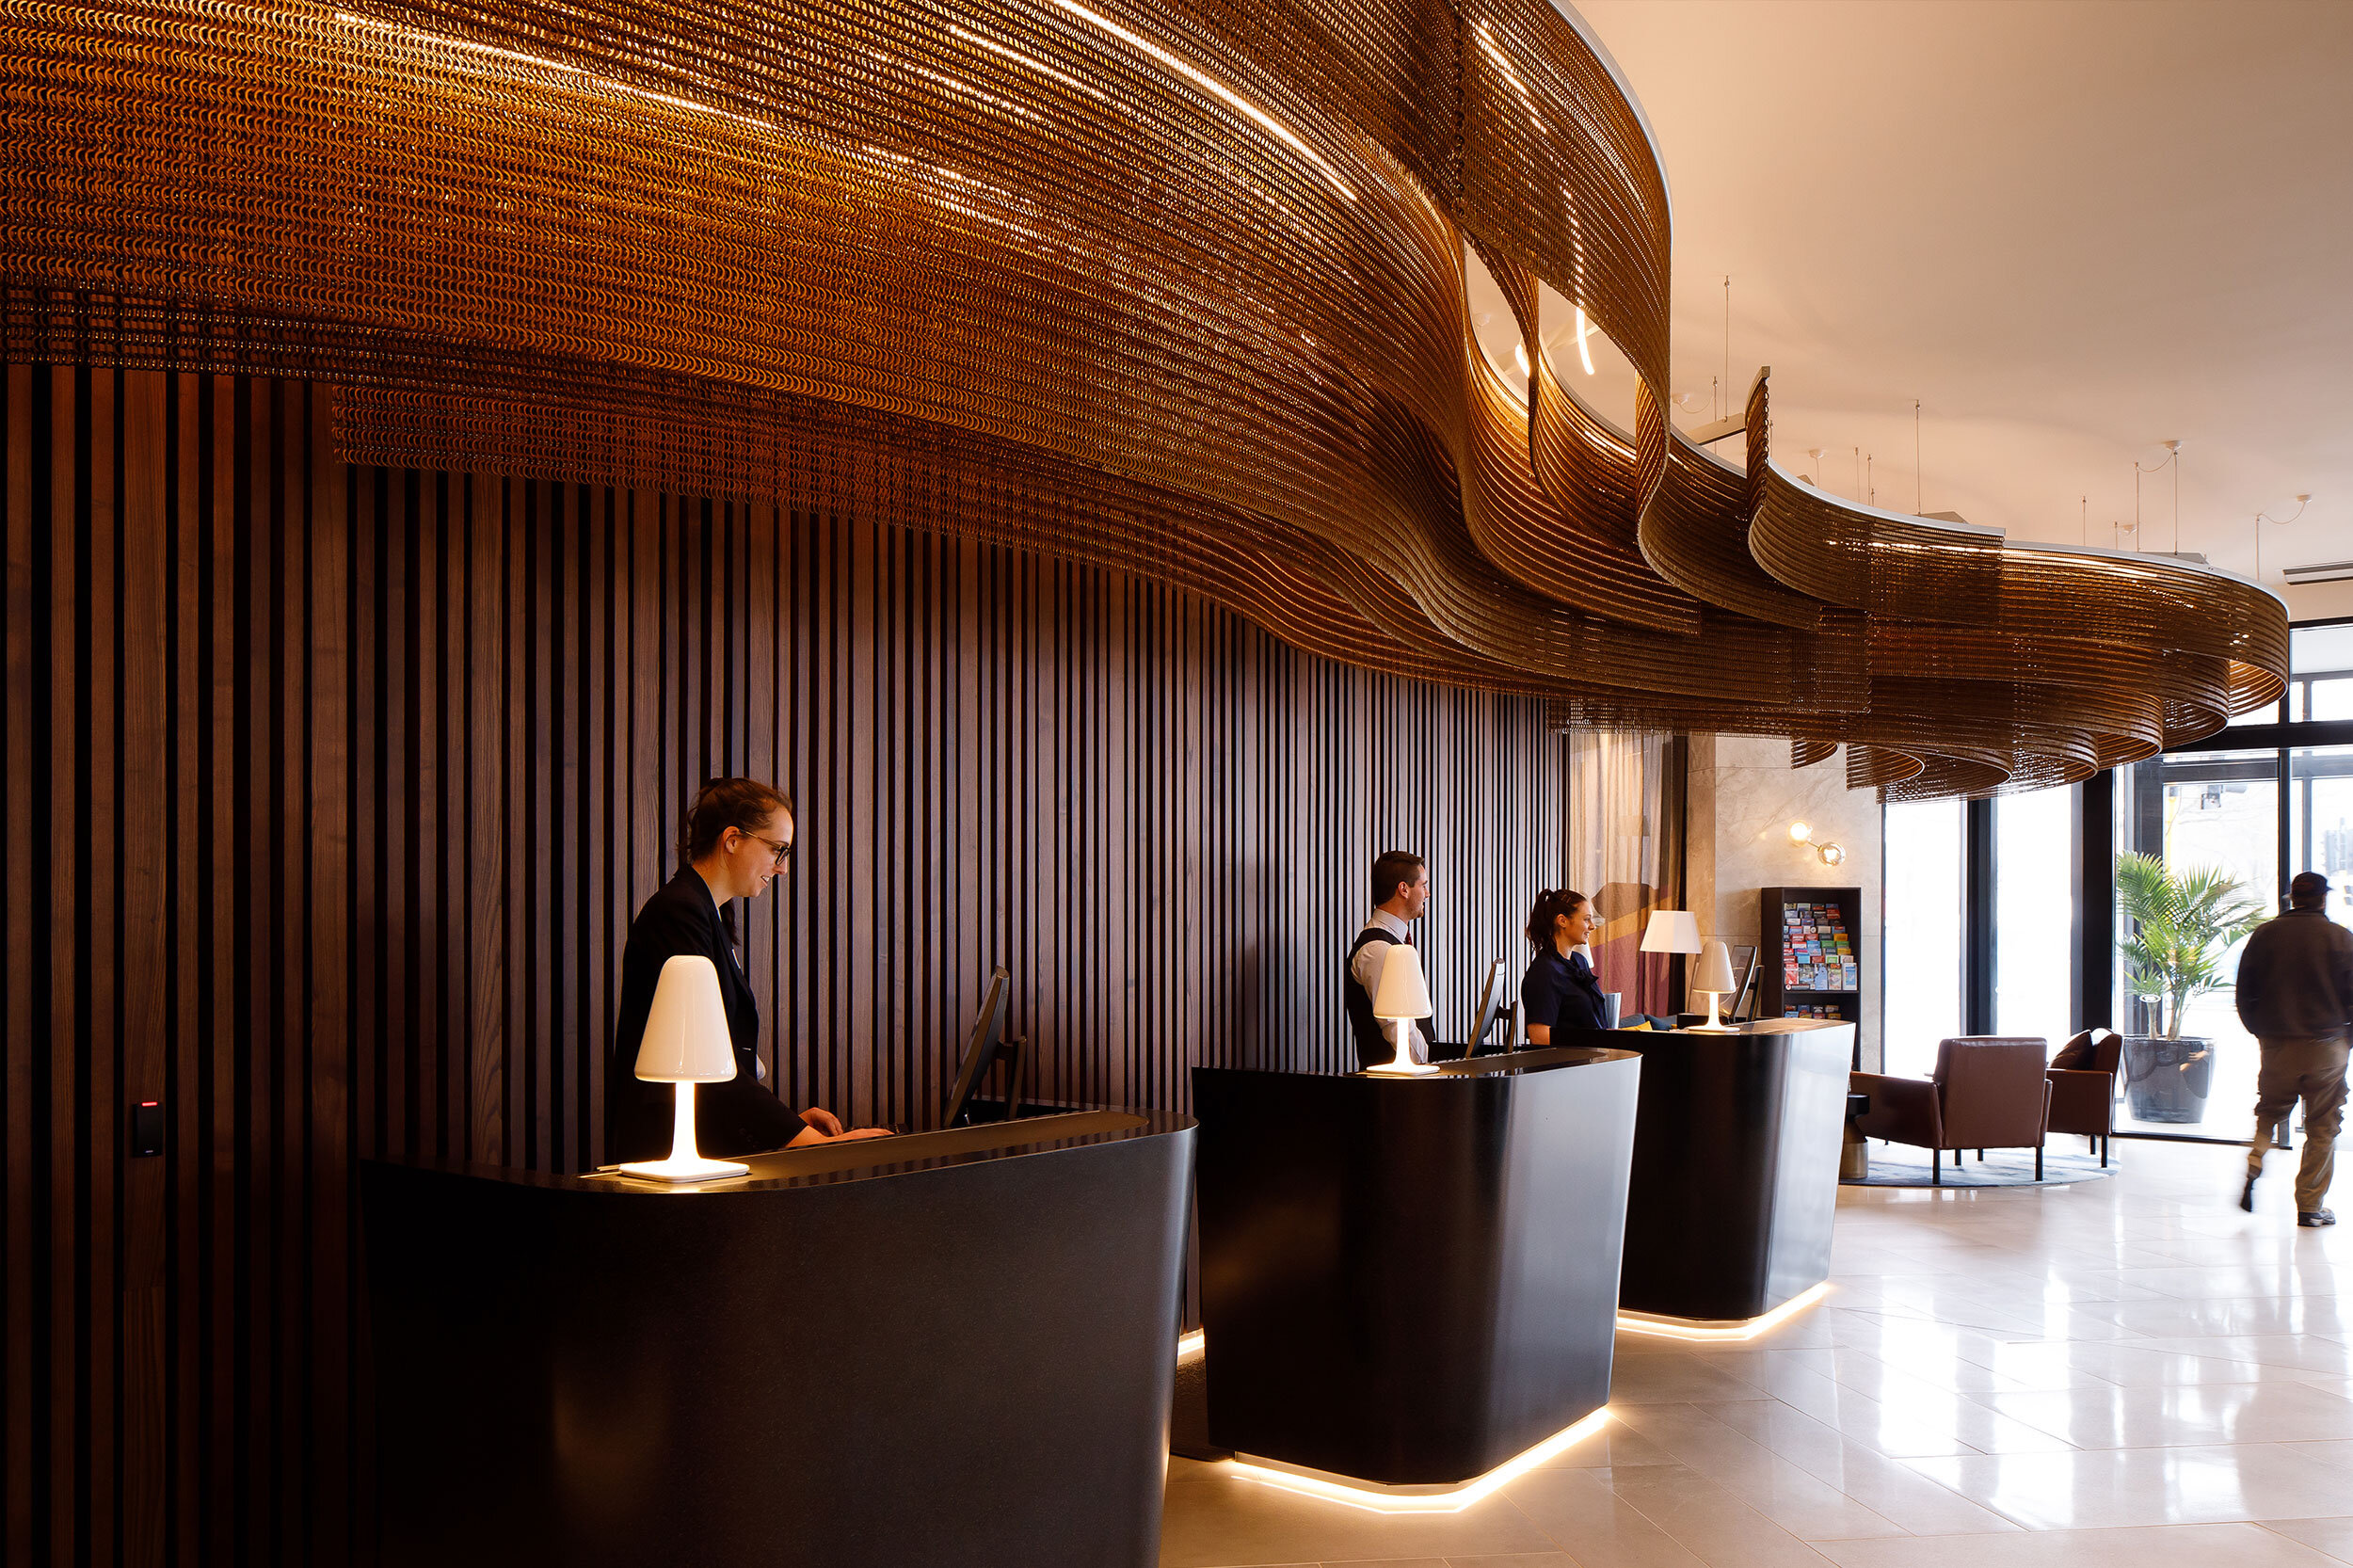 Sculptural Ceiling Feature for Crowne Plaza Hotel  Christchurch, New Zealand